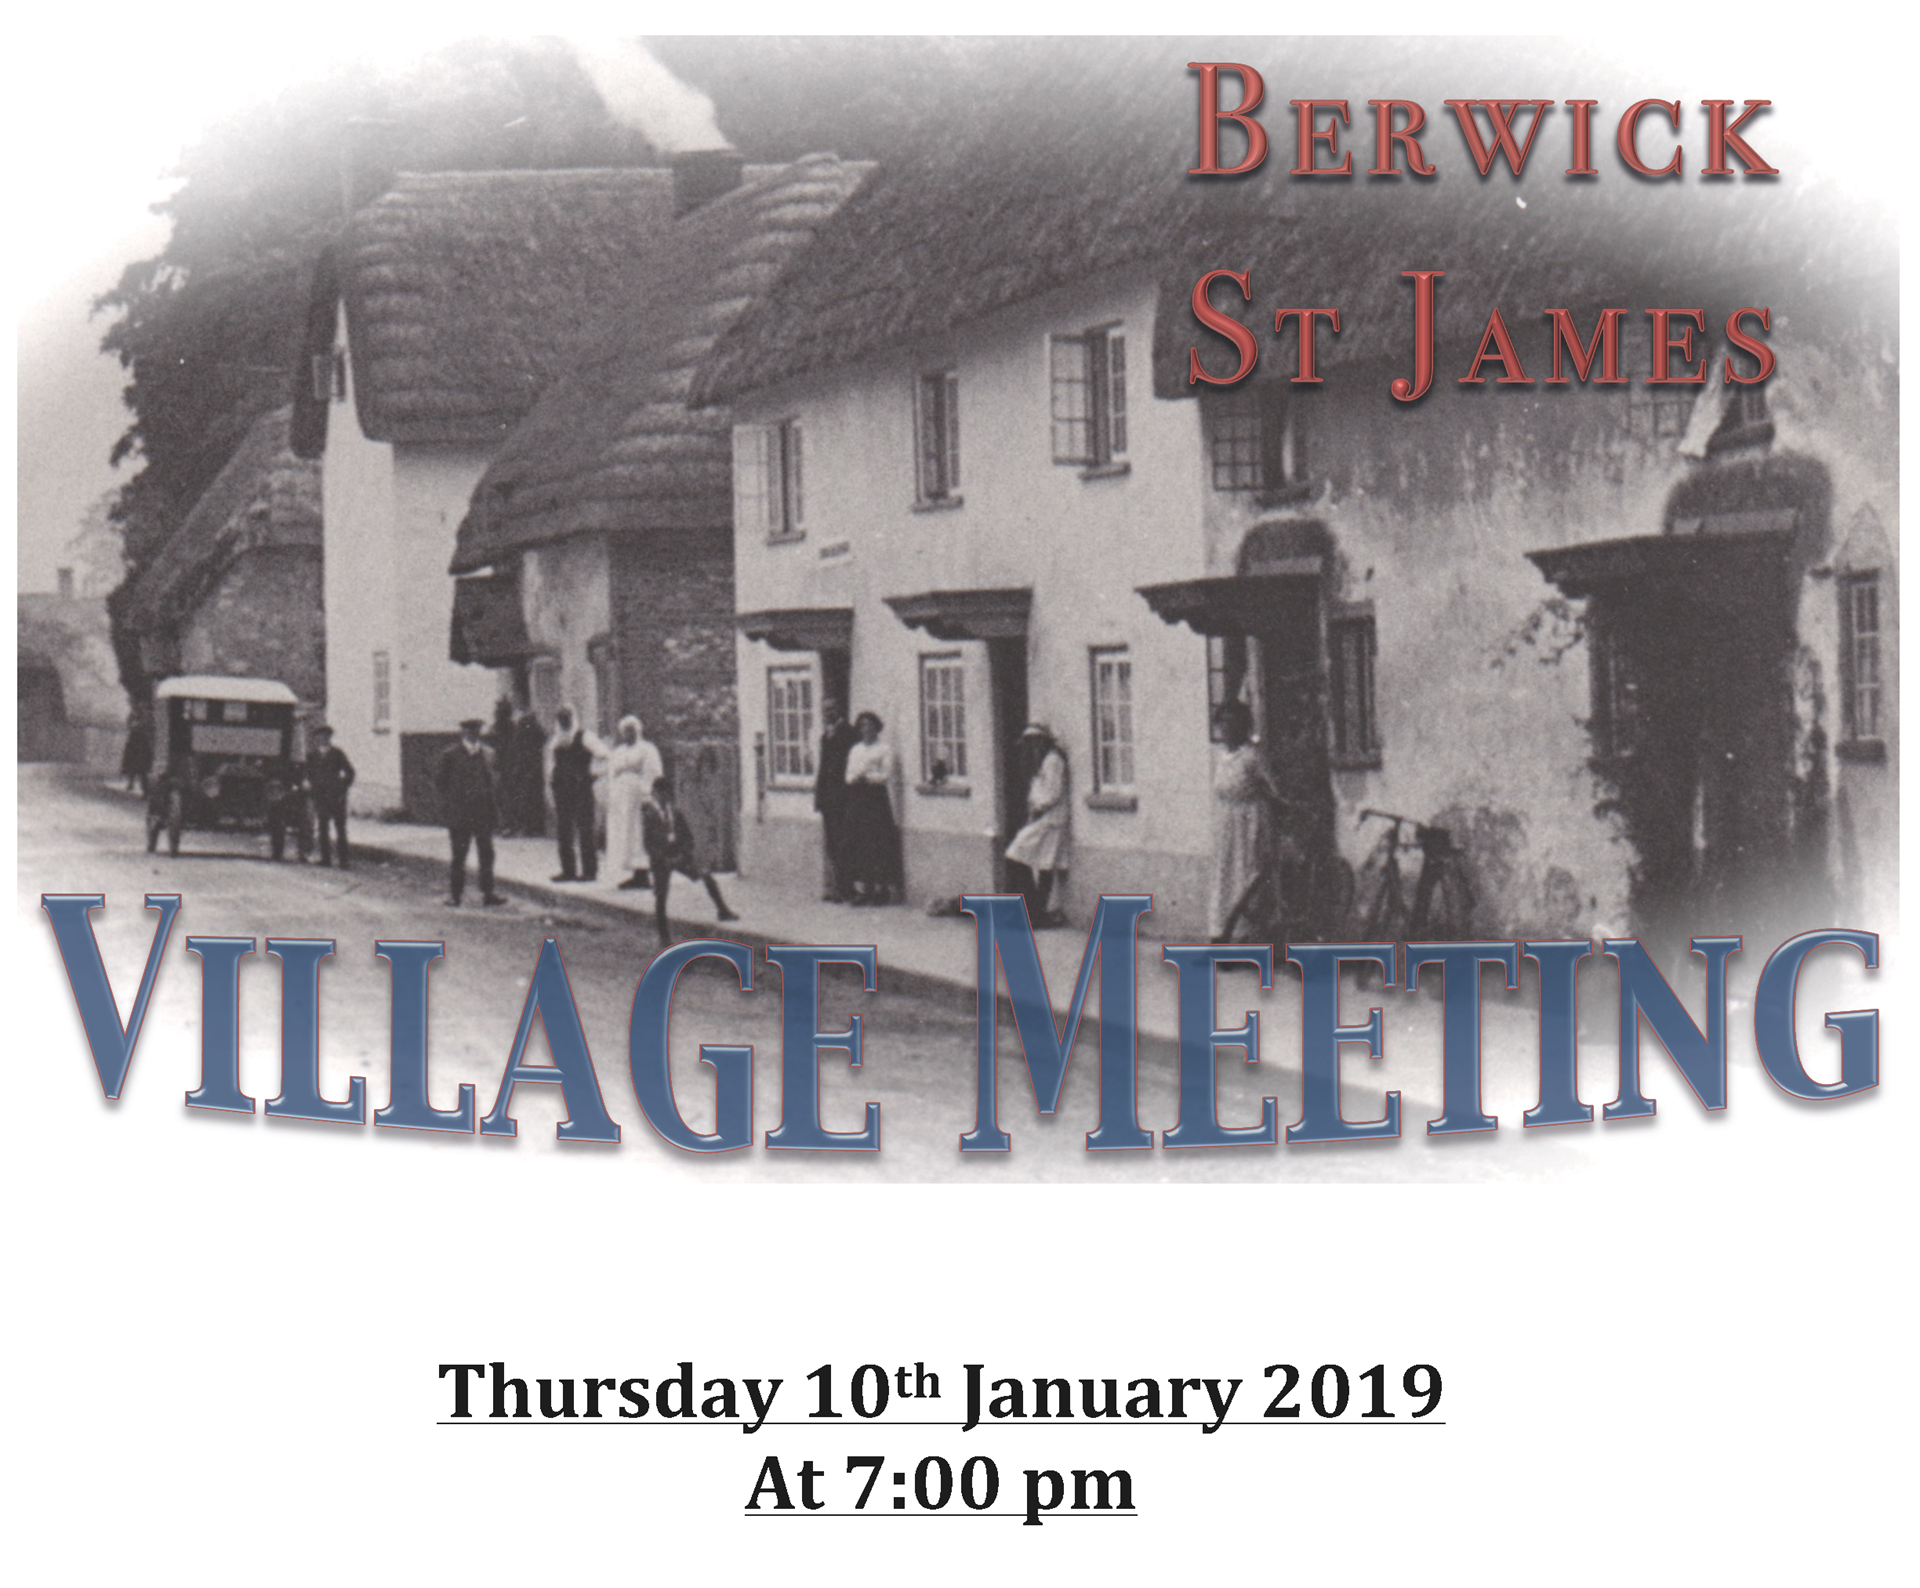 Berwick St James Parish 10th January 2019